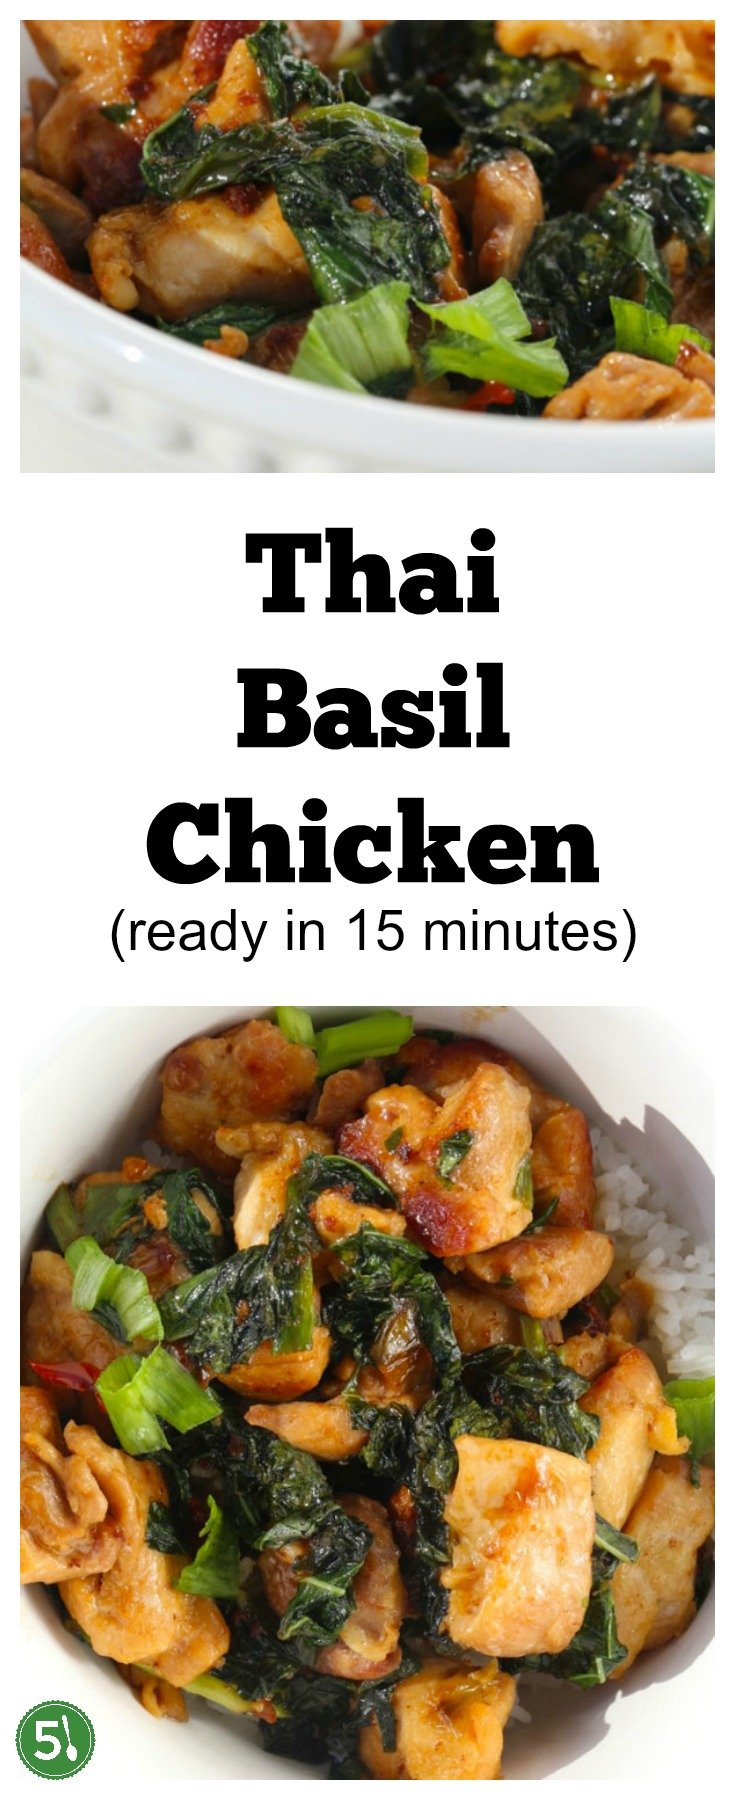 Delicious and healthy Thai Basil Chicken stir fry recipe. So easy to whip up for a midweek dinner!